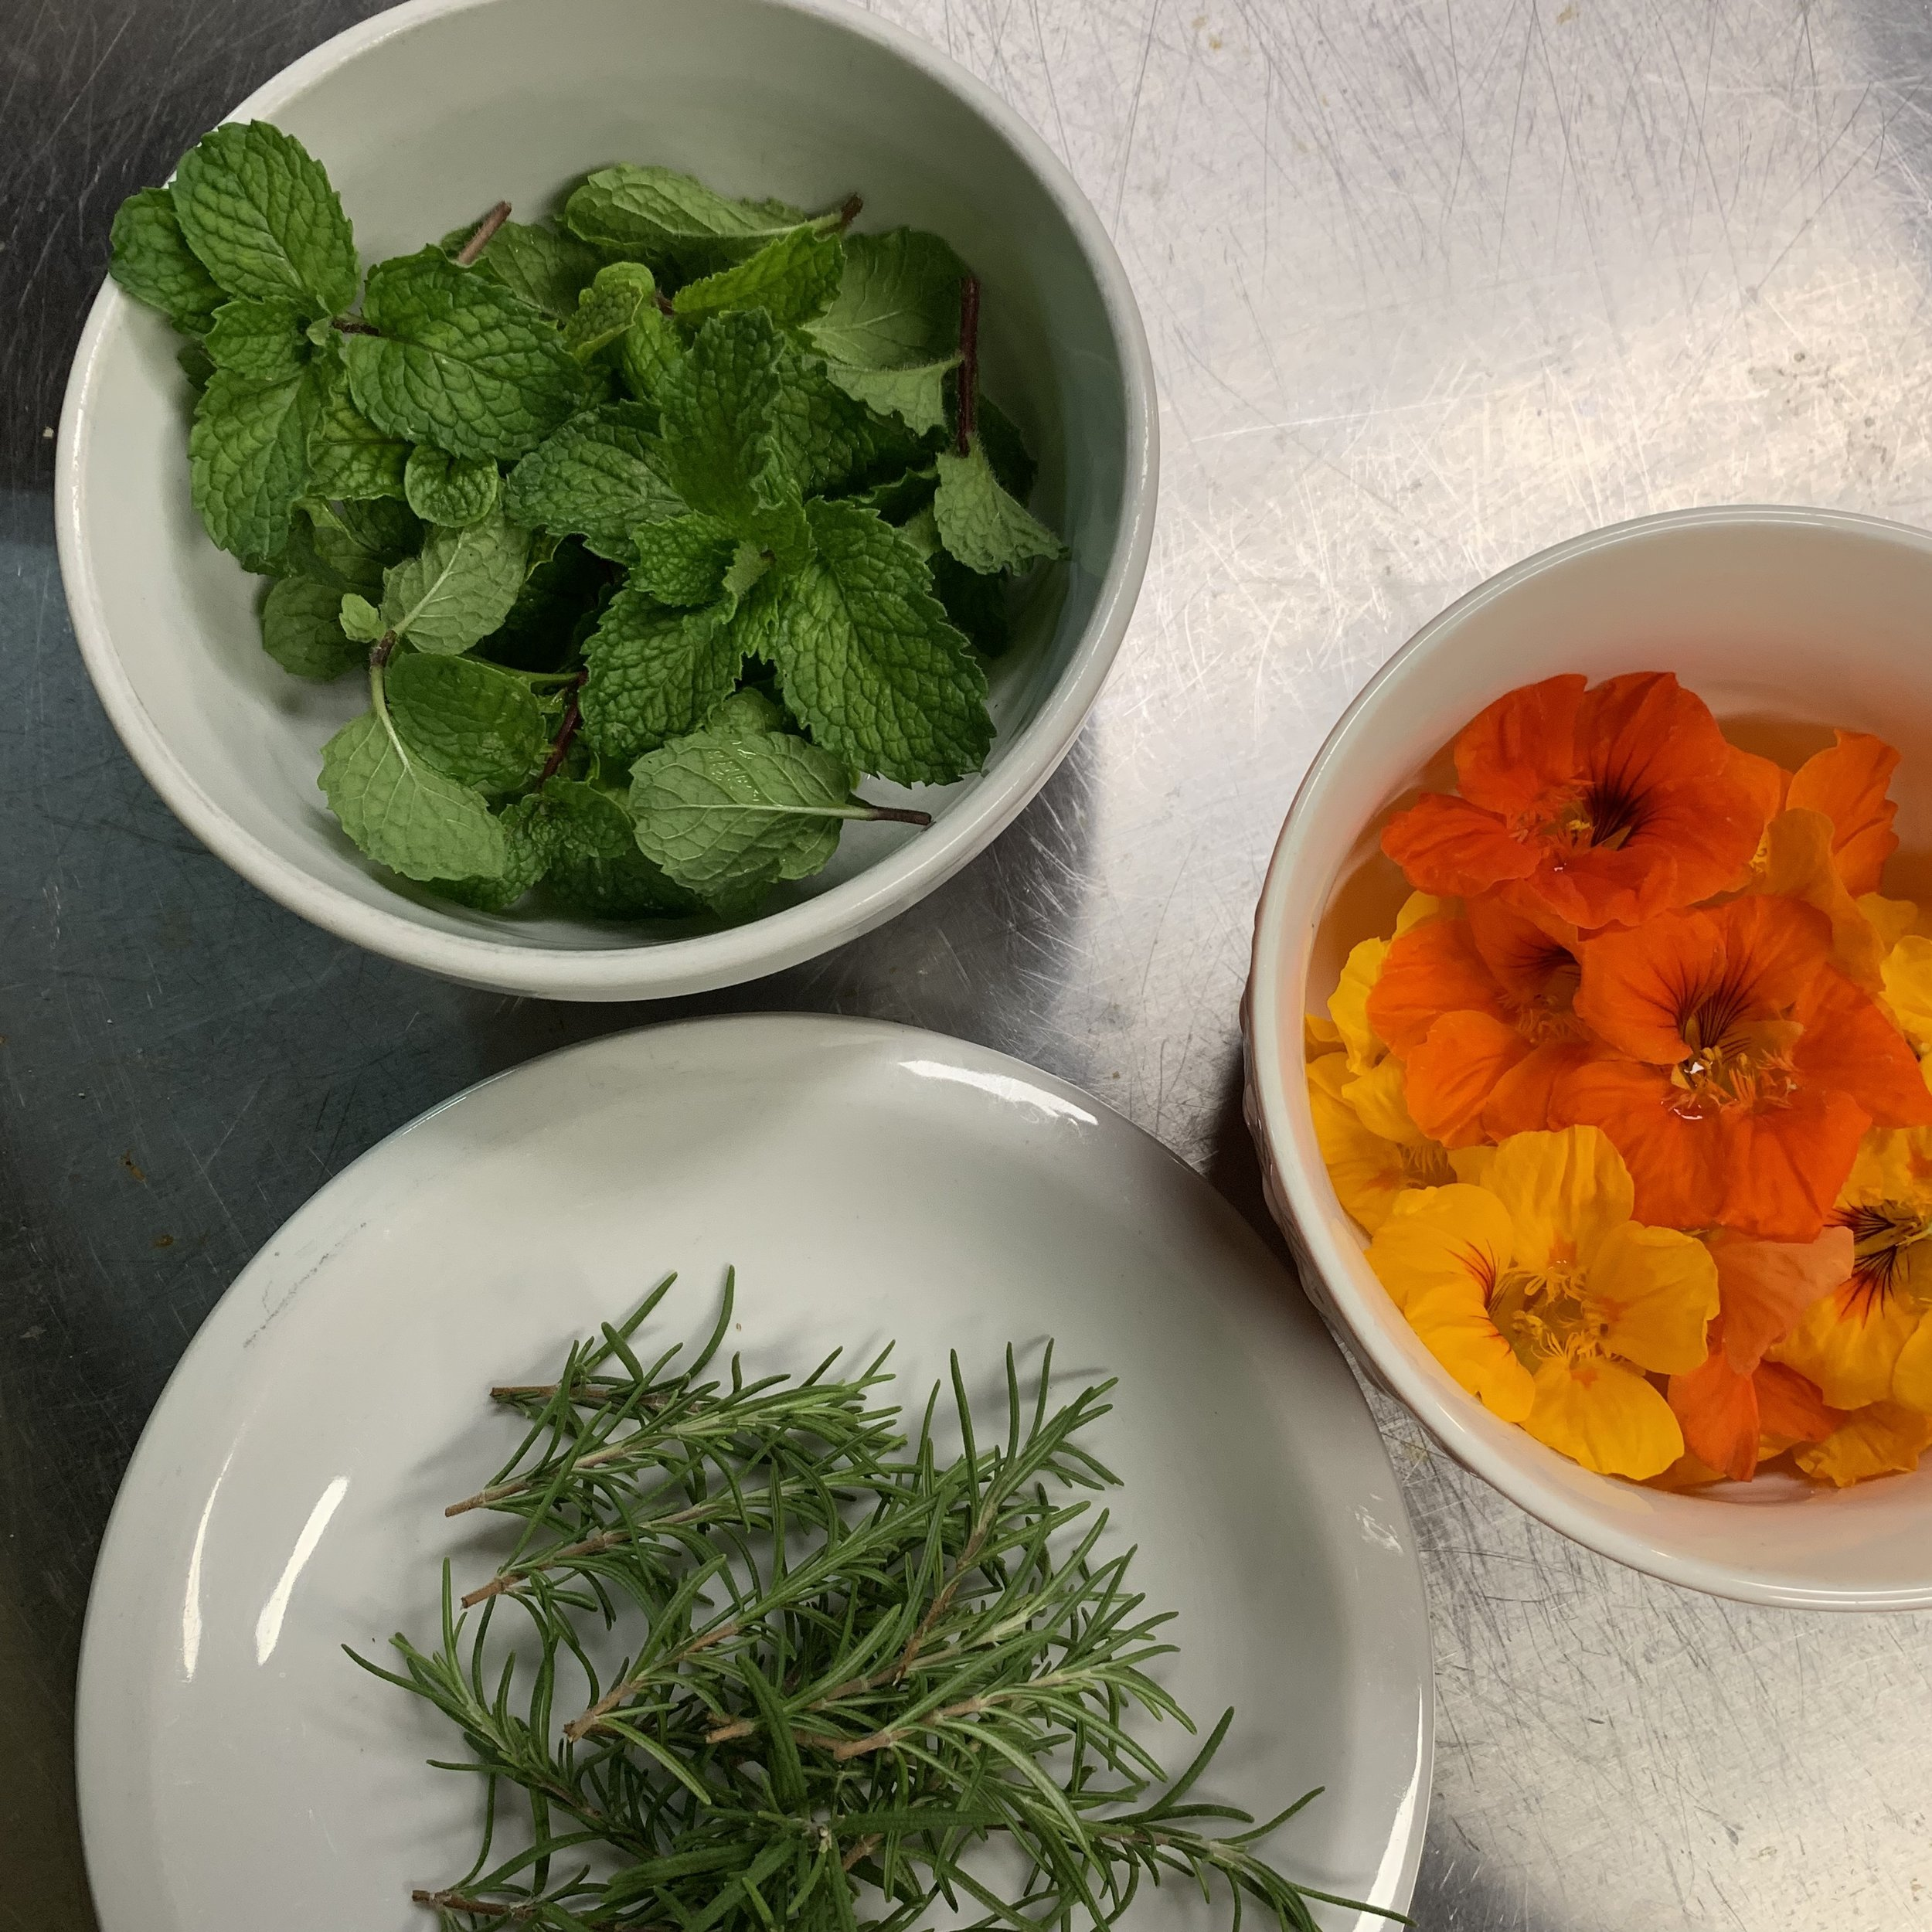 Mint for the water, rosemary for the potatoes, and edible flowers for dessert. And they all came right off the Inn's property!